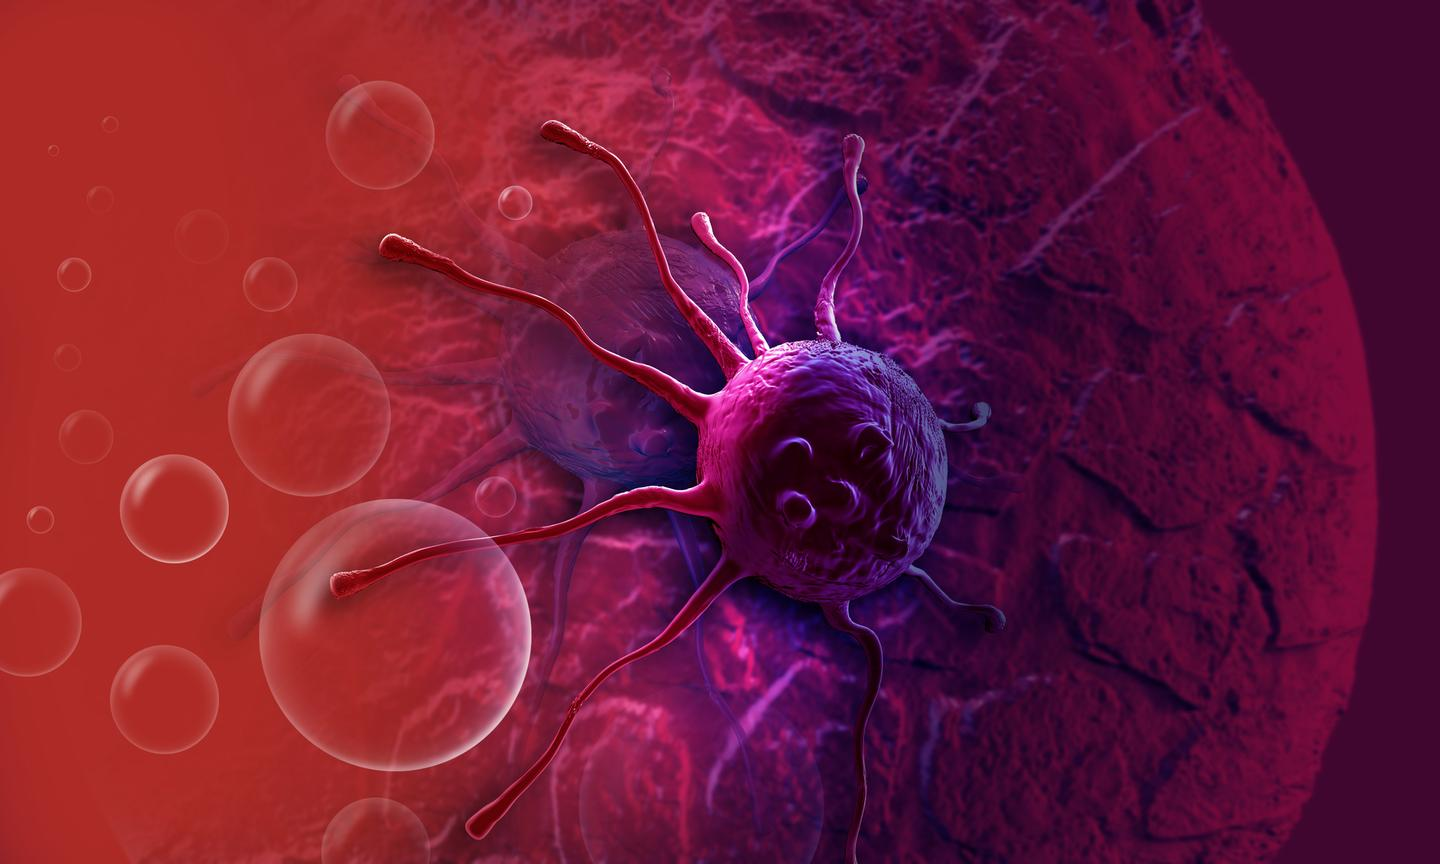 Mutations in the KRAS gene are associated with pancreatic cancer, but a new study has found a way to fight them